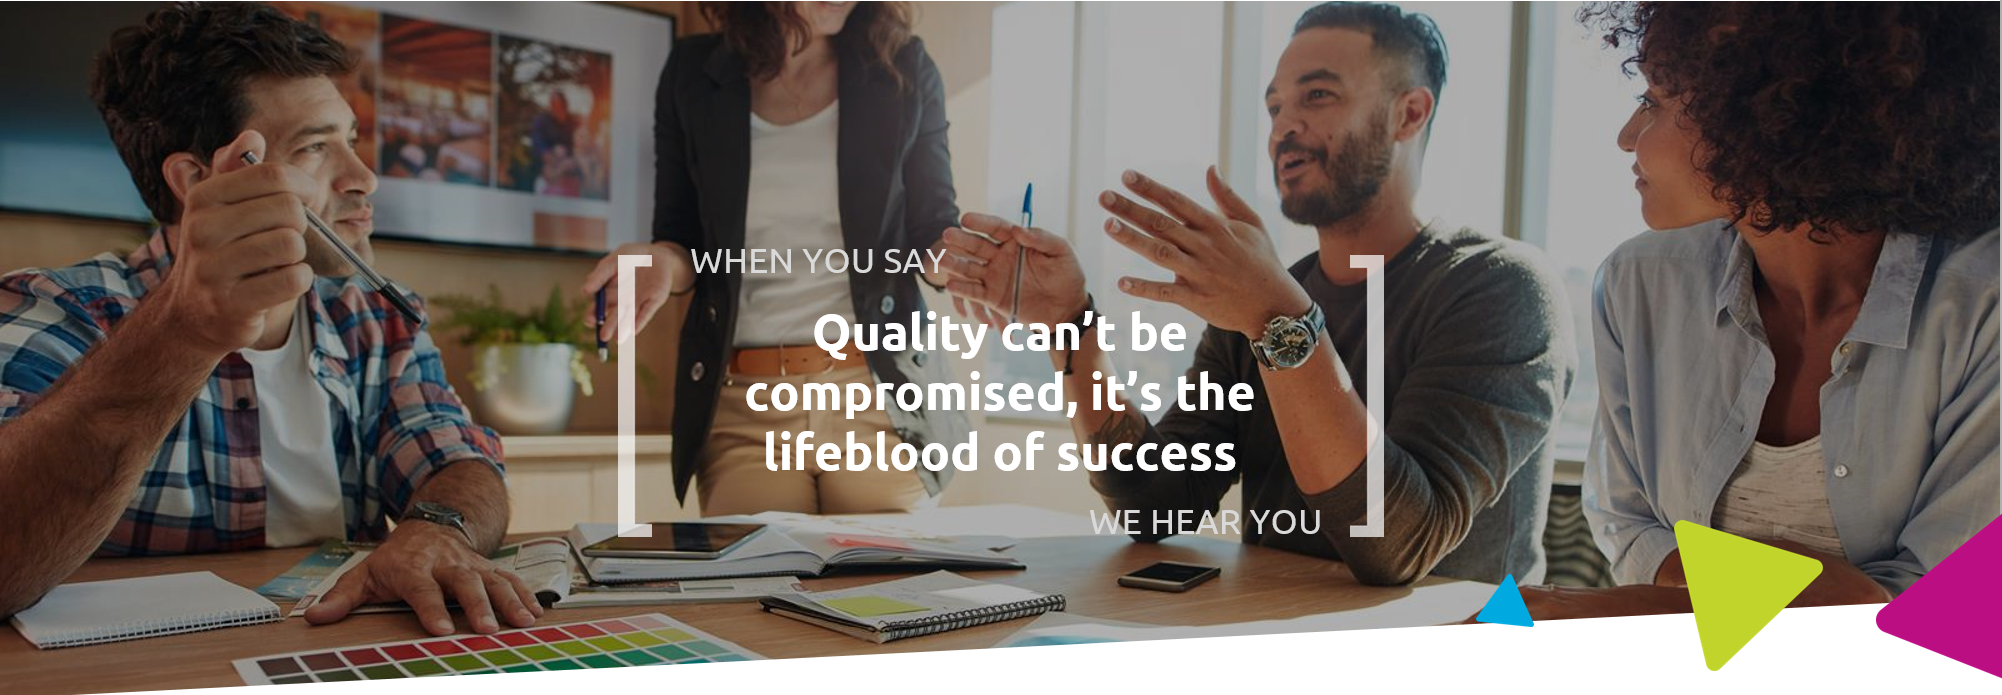 When you say quality can't be compromised, it's the lifeblood of success, we hear you